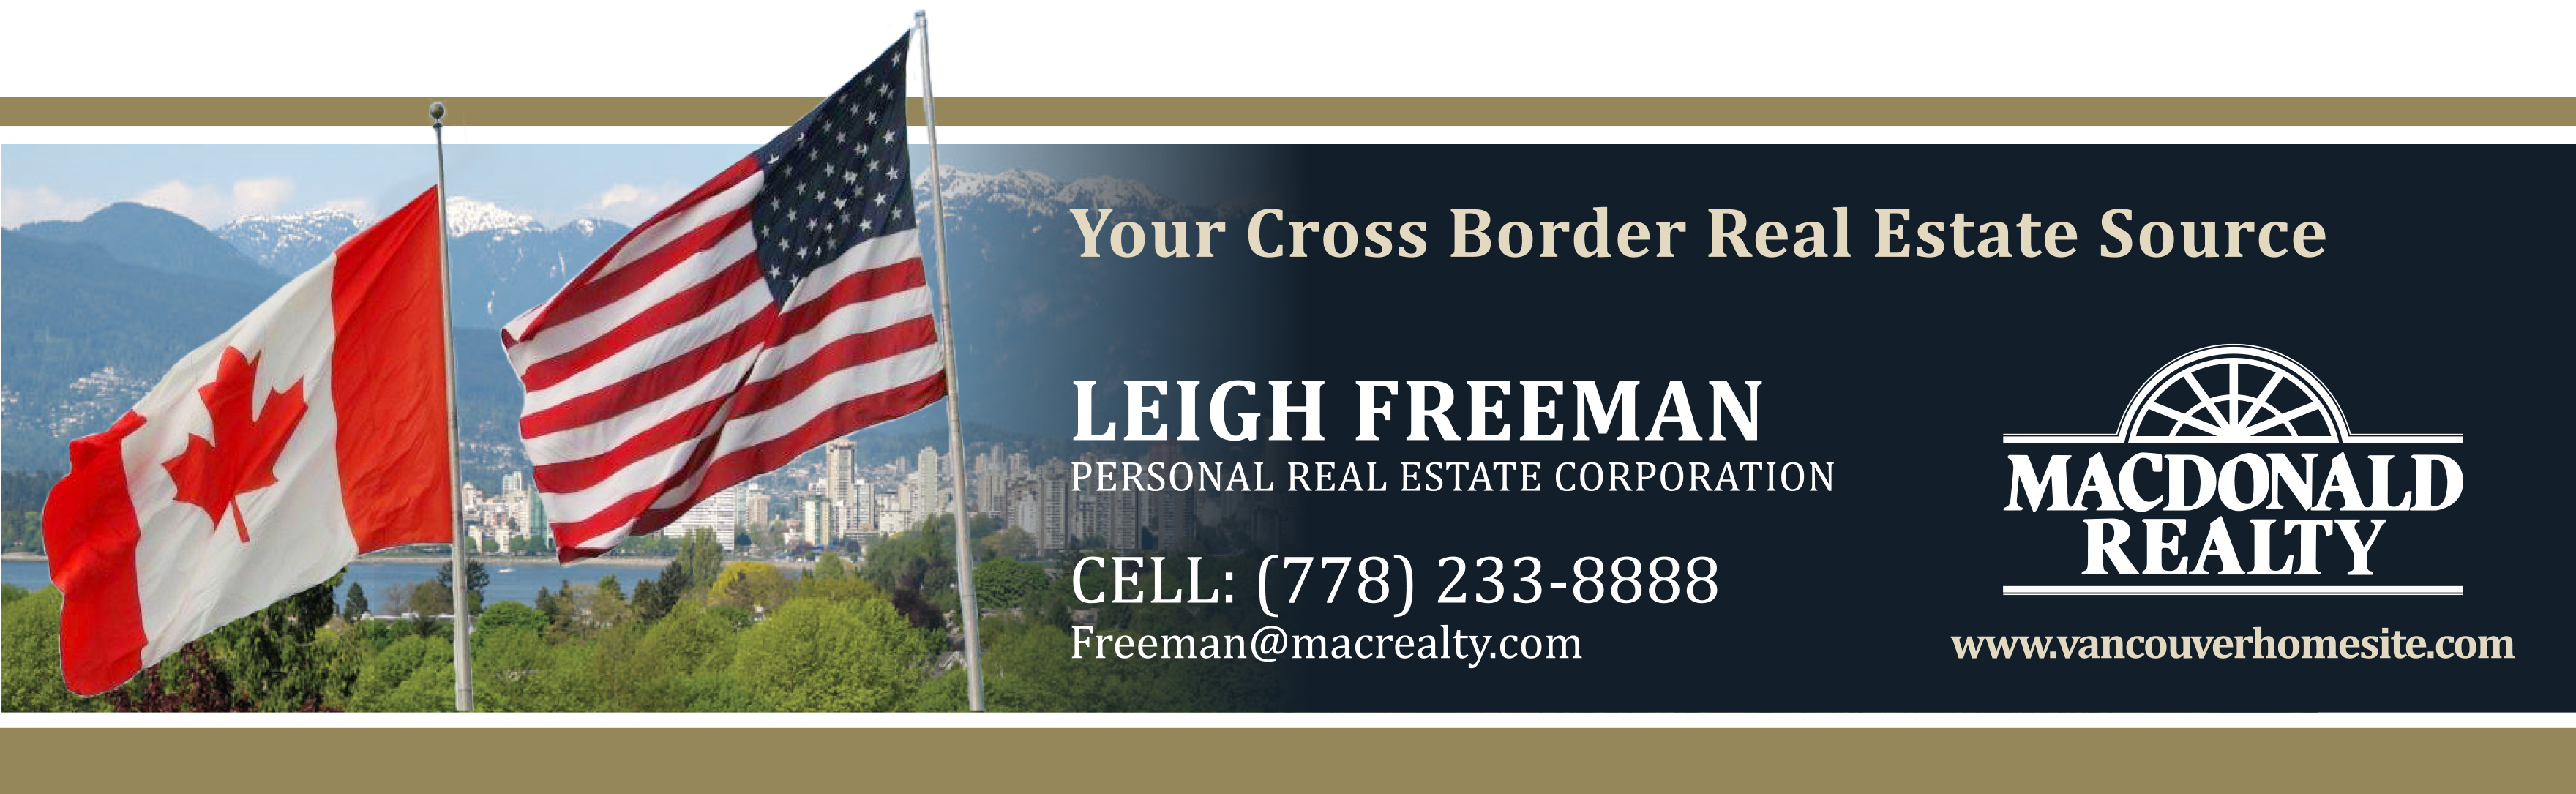 Leigh Freeman Personal Real Estate Corporation